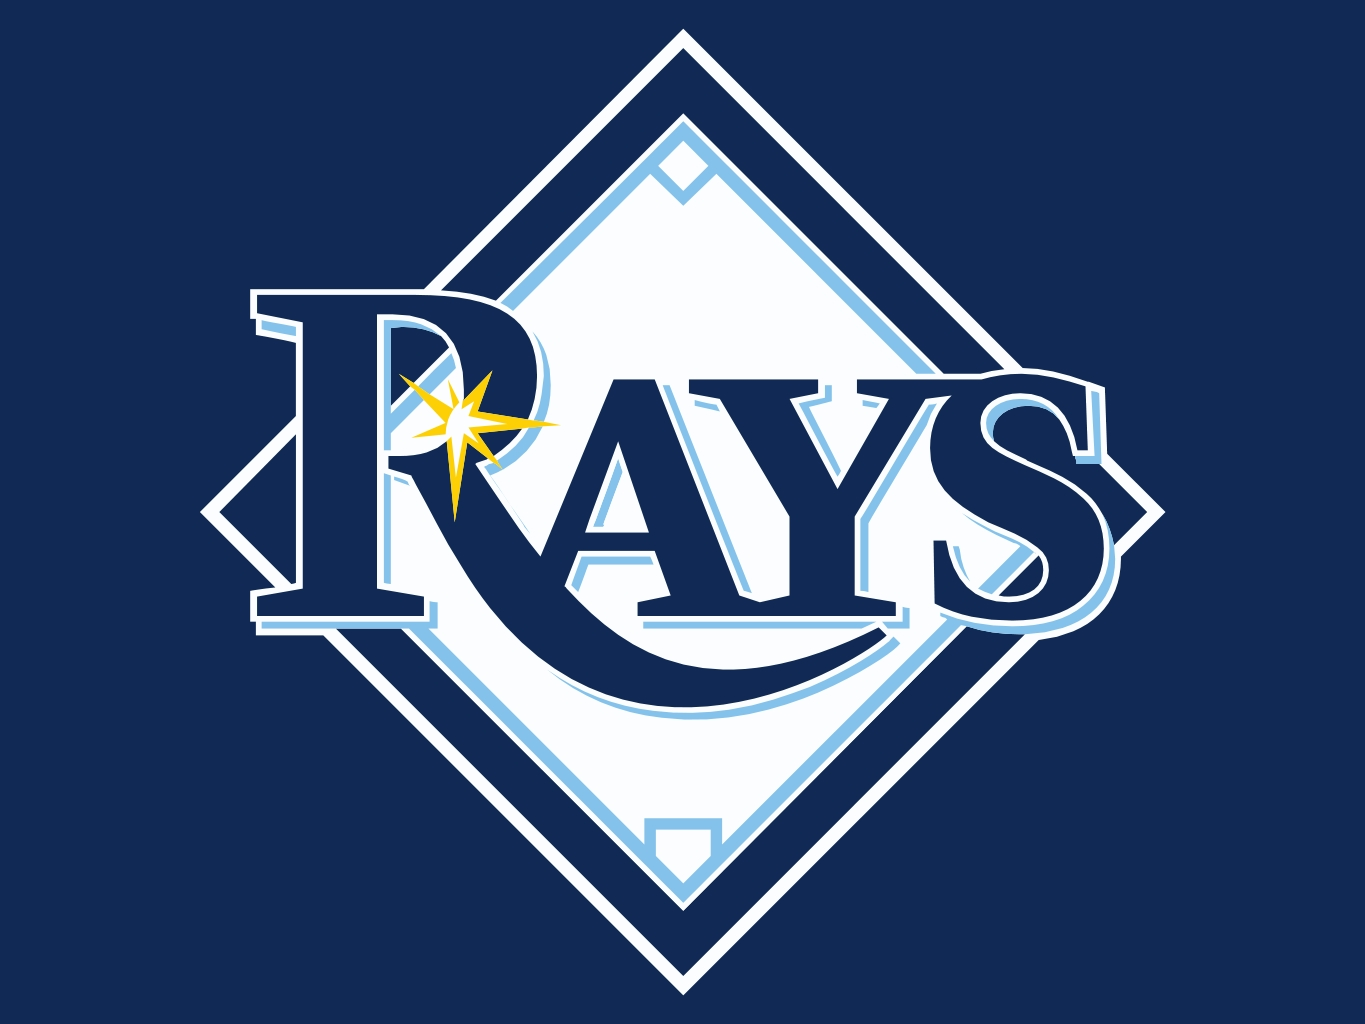 Tampa_Bay_Rays